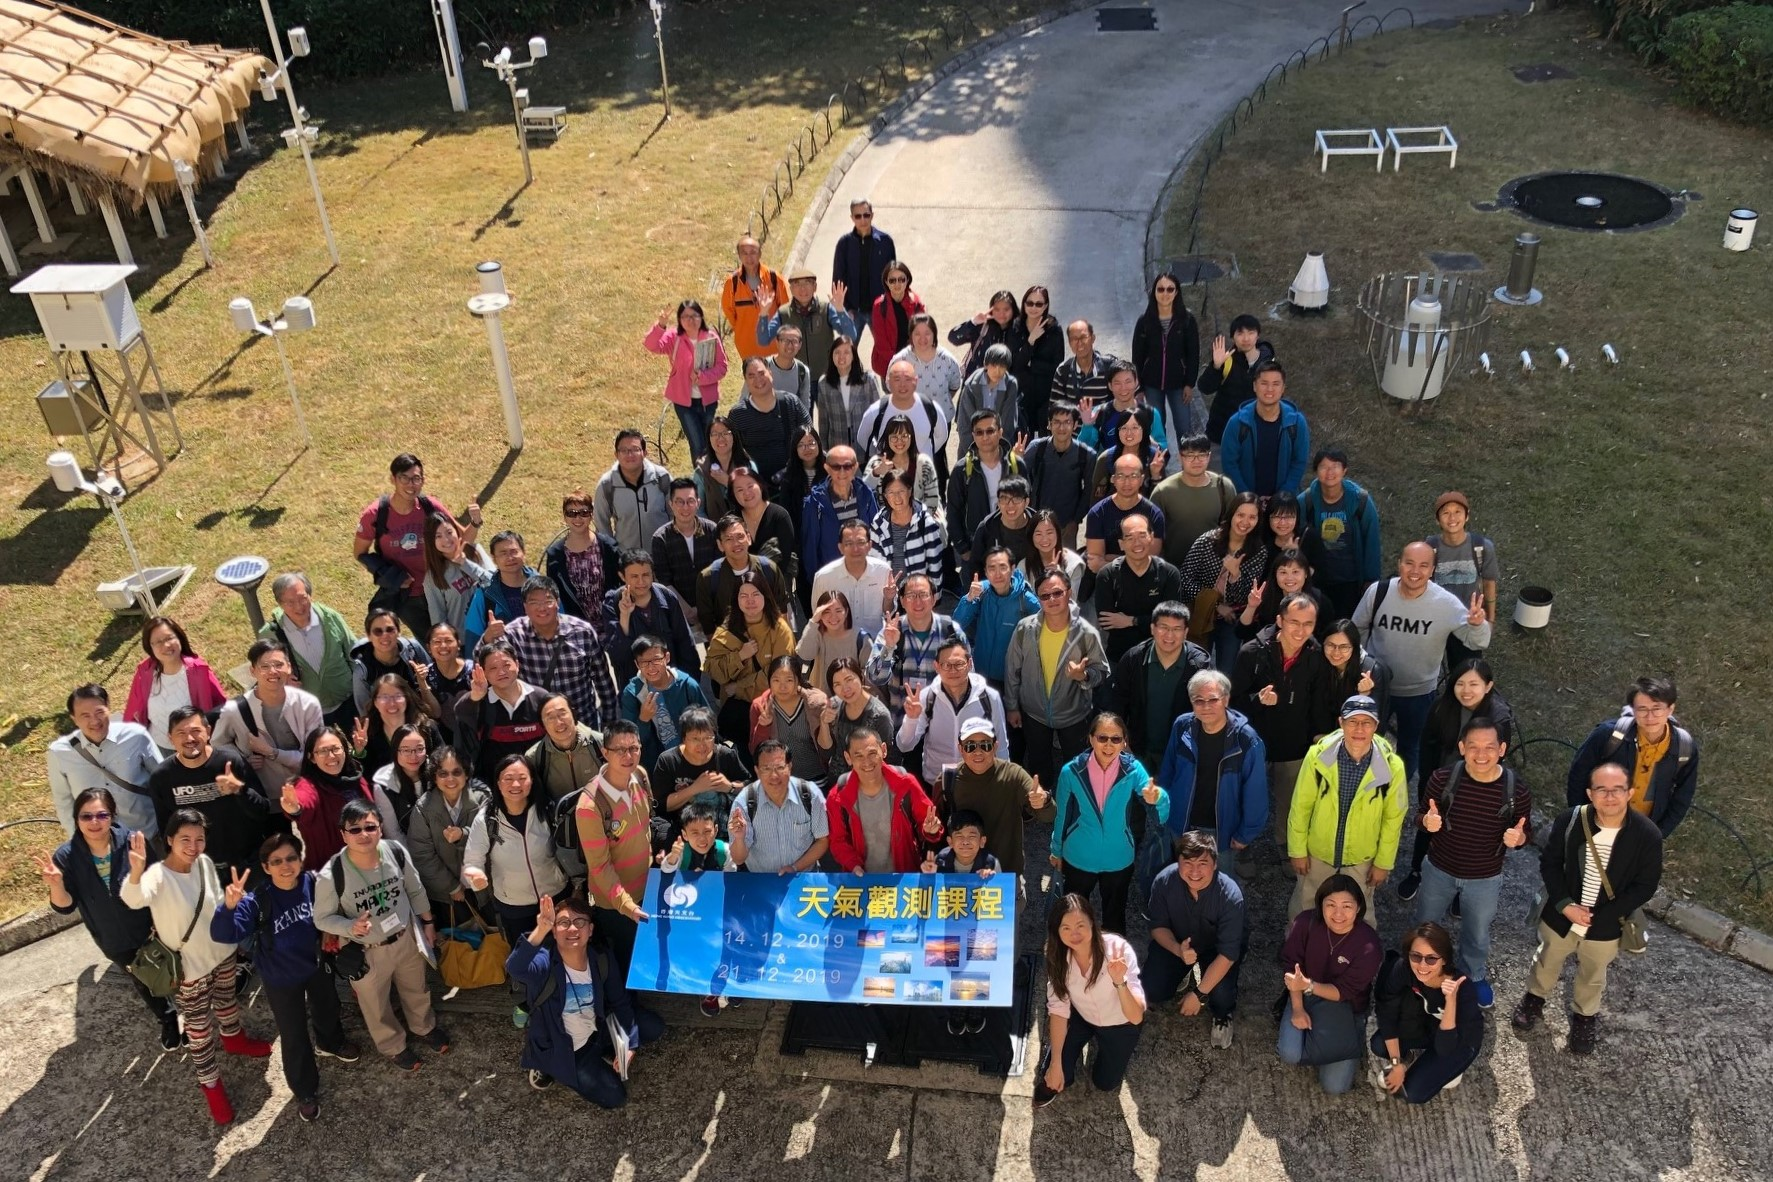 The Public Course on Weather Observation successfully concluded in December 2019